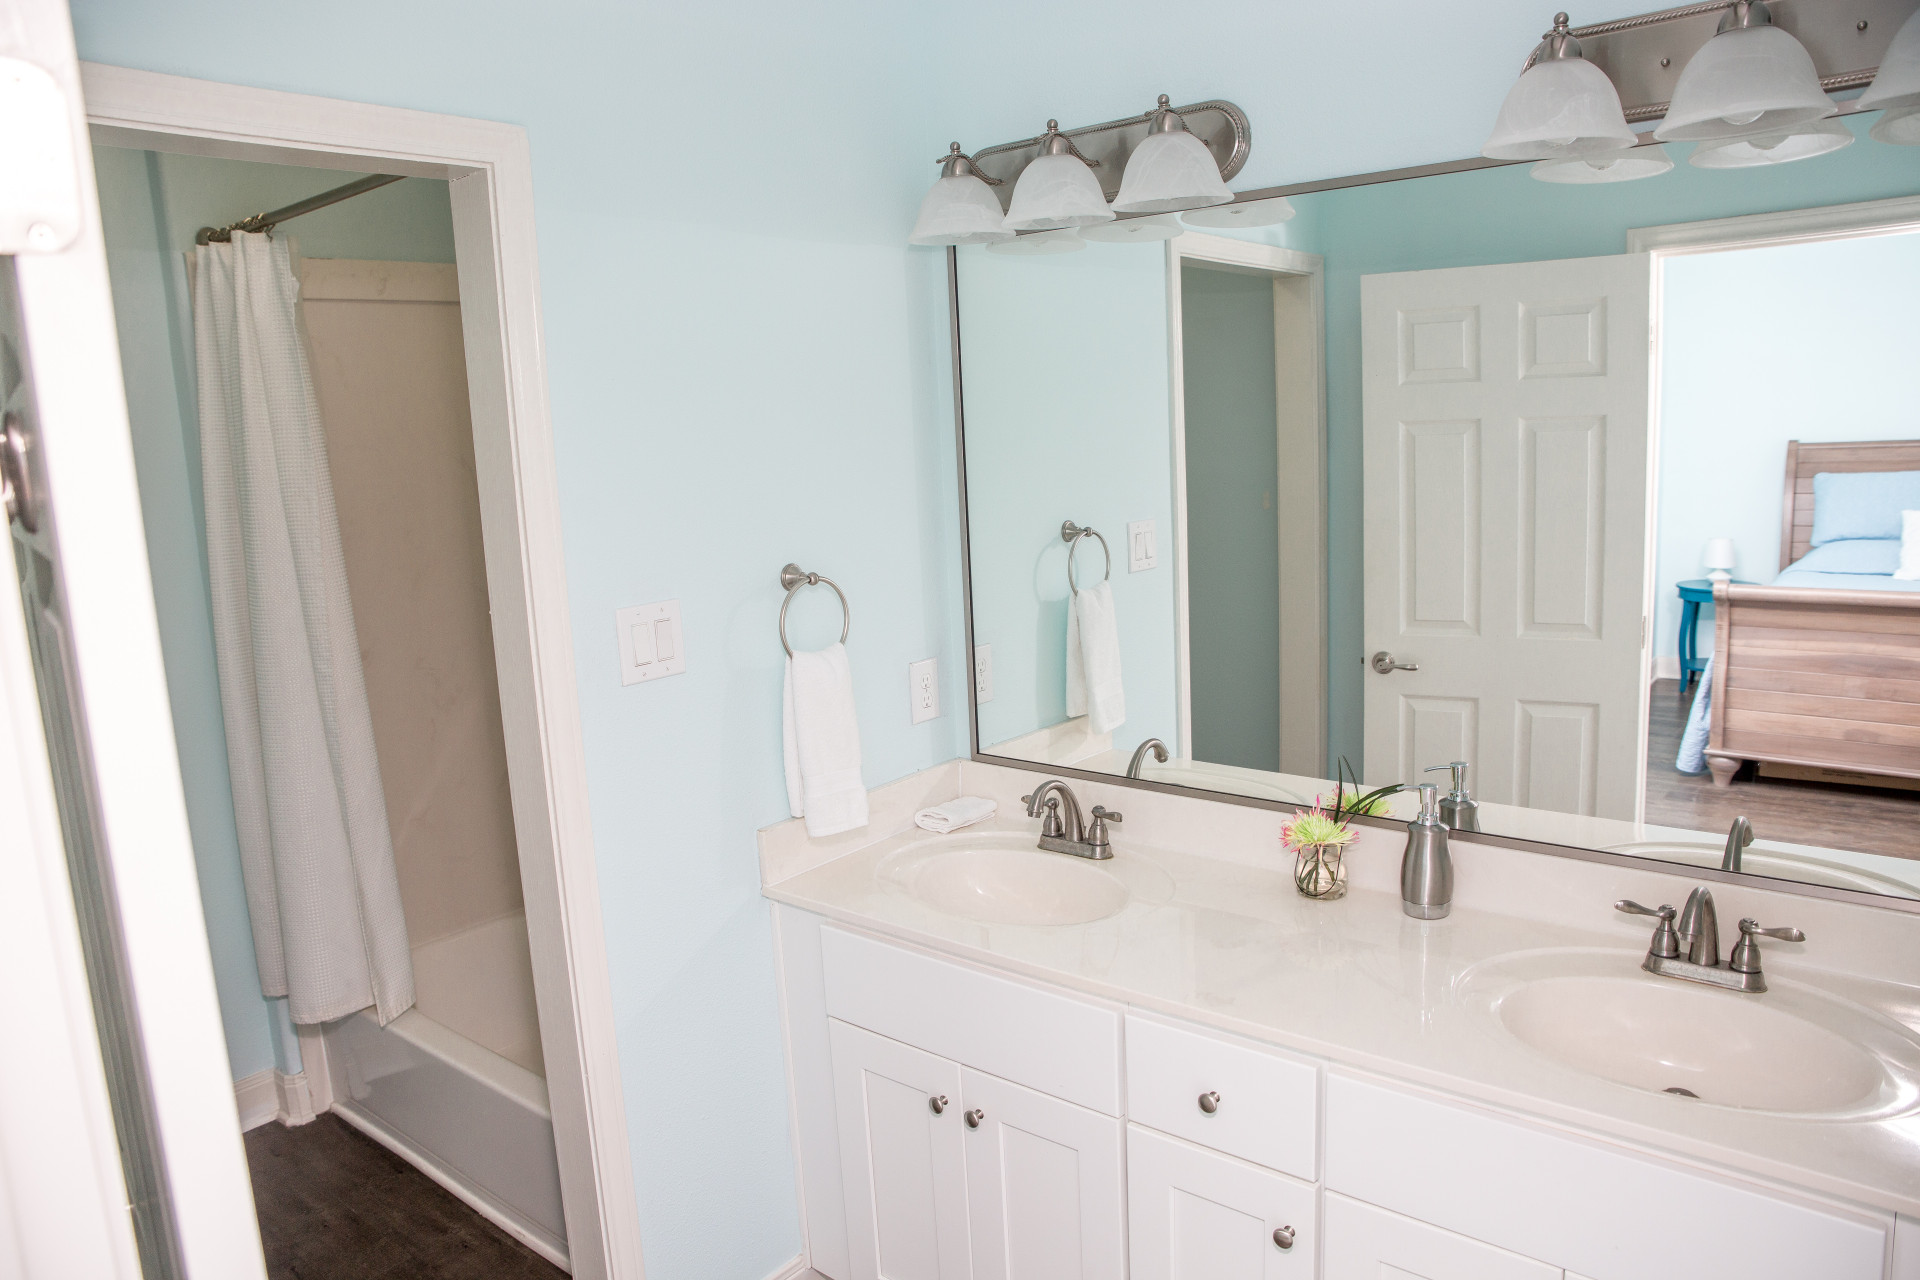 Into the Blue vacation house master bathroom in Galveston RV park